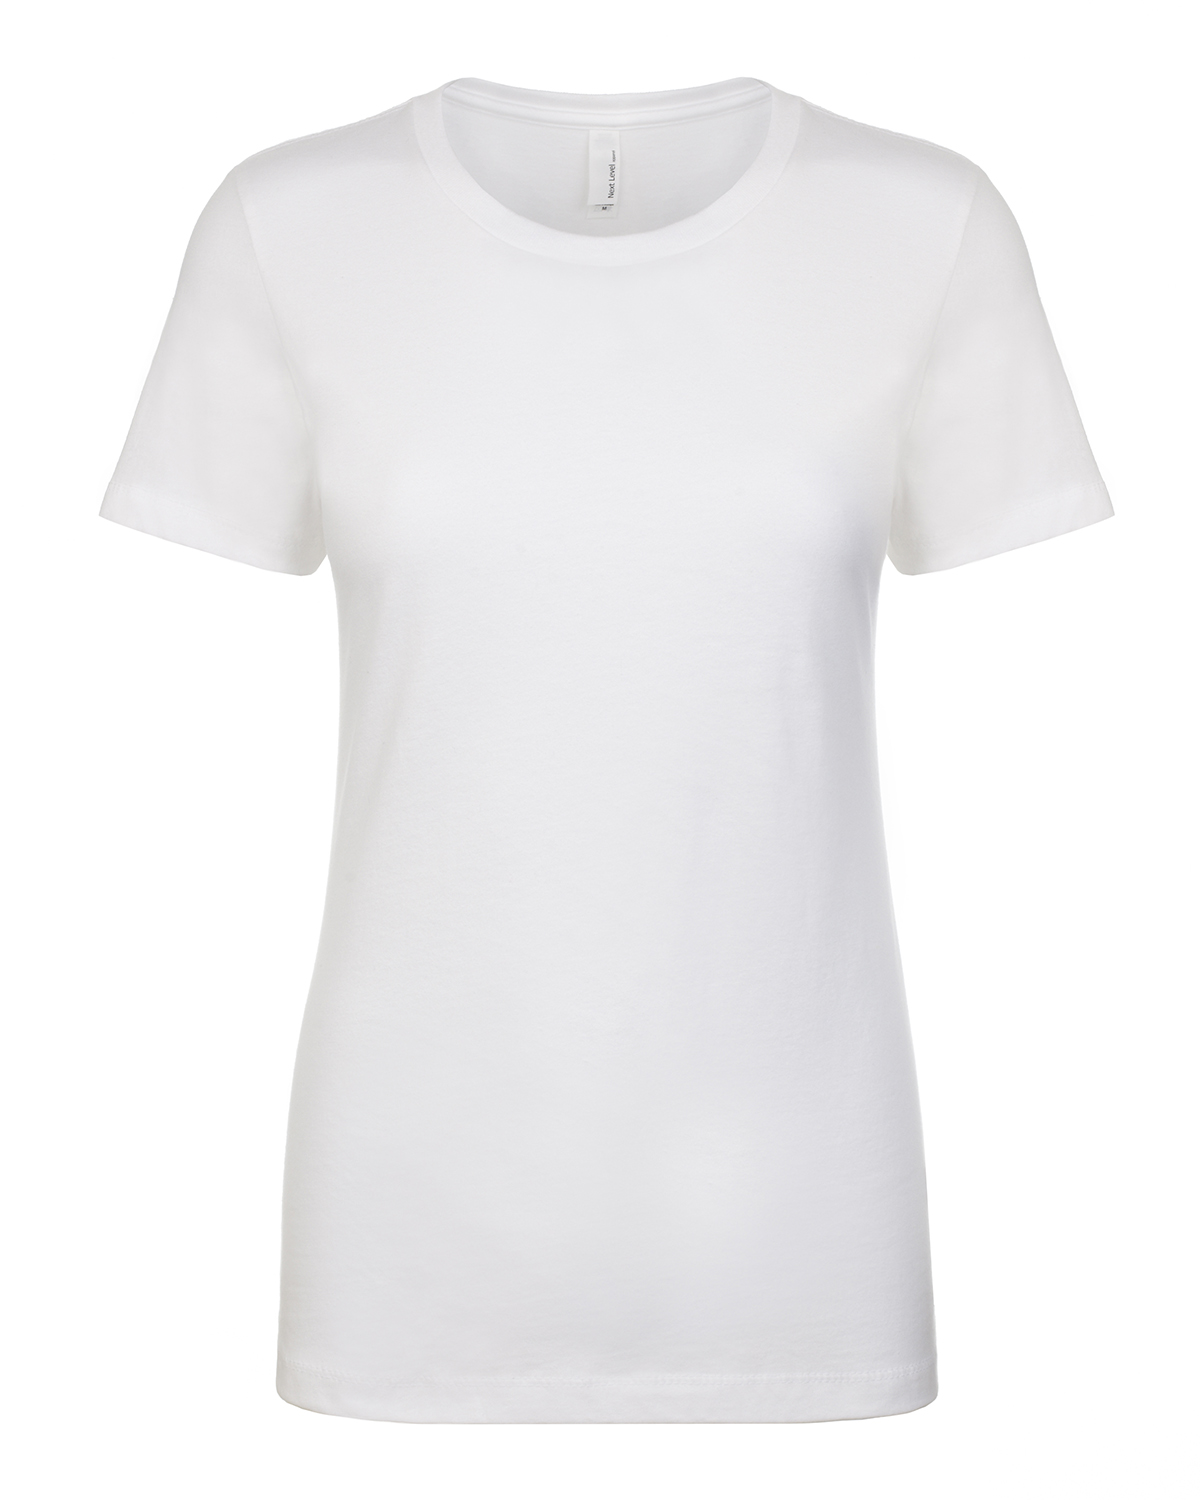 Next Level Apparel N1510 - Ladies' Ideal Short-Sleeve ...